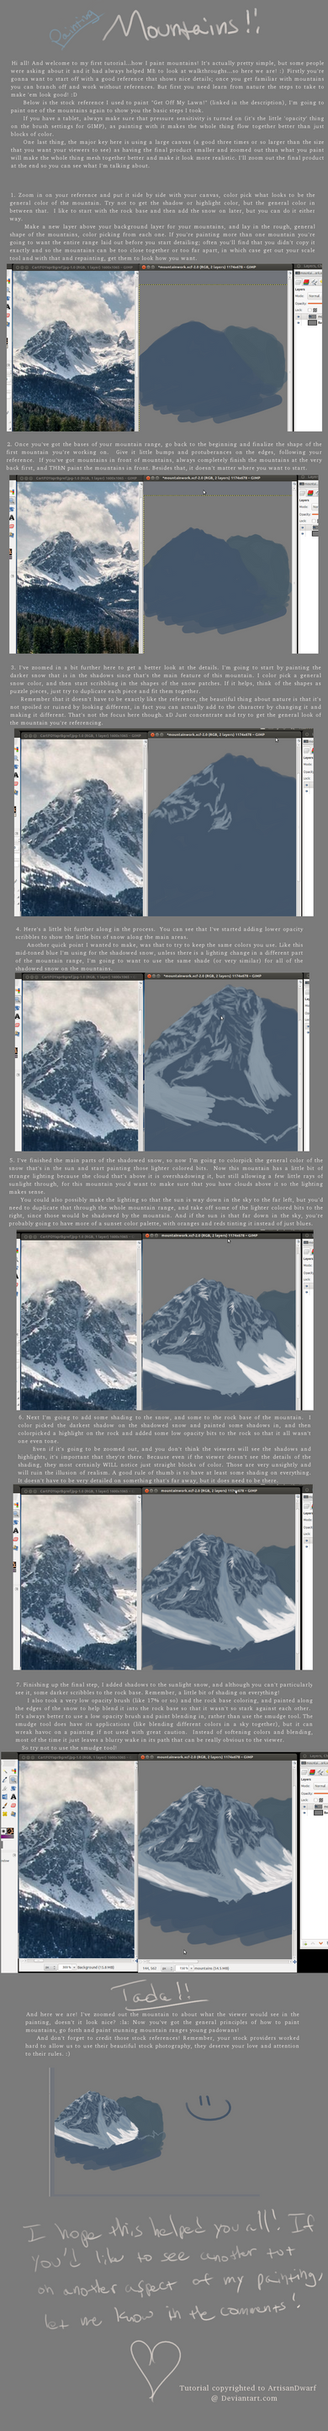 Tutorial: How to Paint Mountains! by ArtisanDwarf